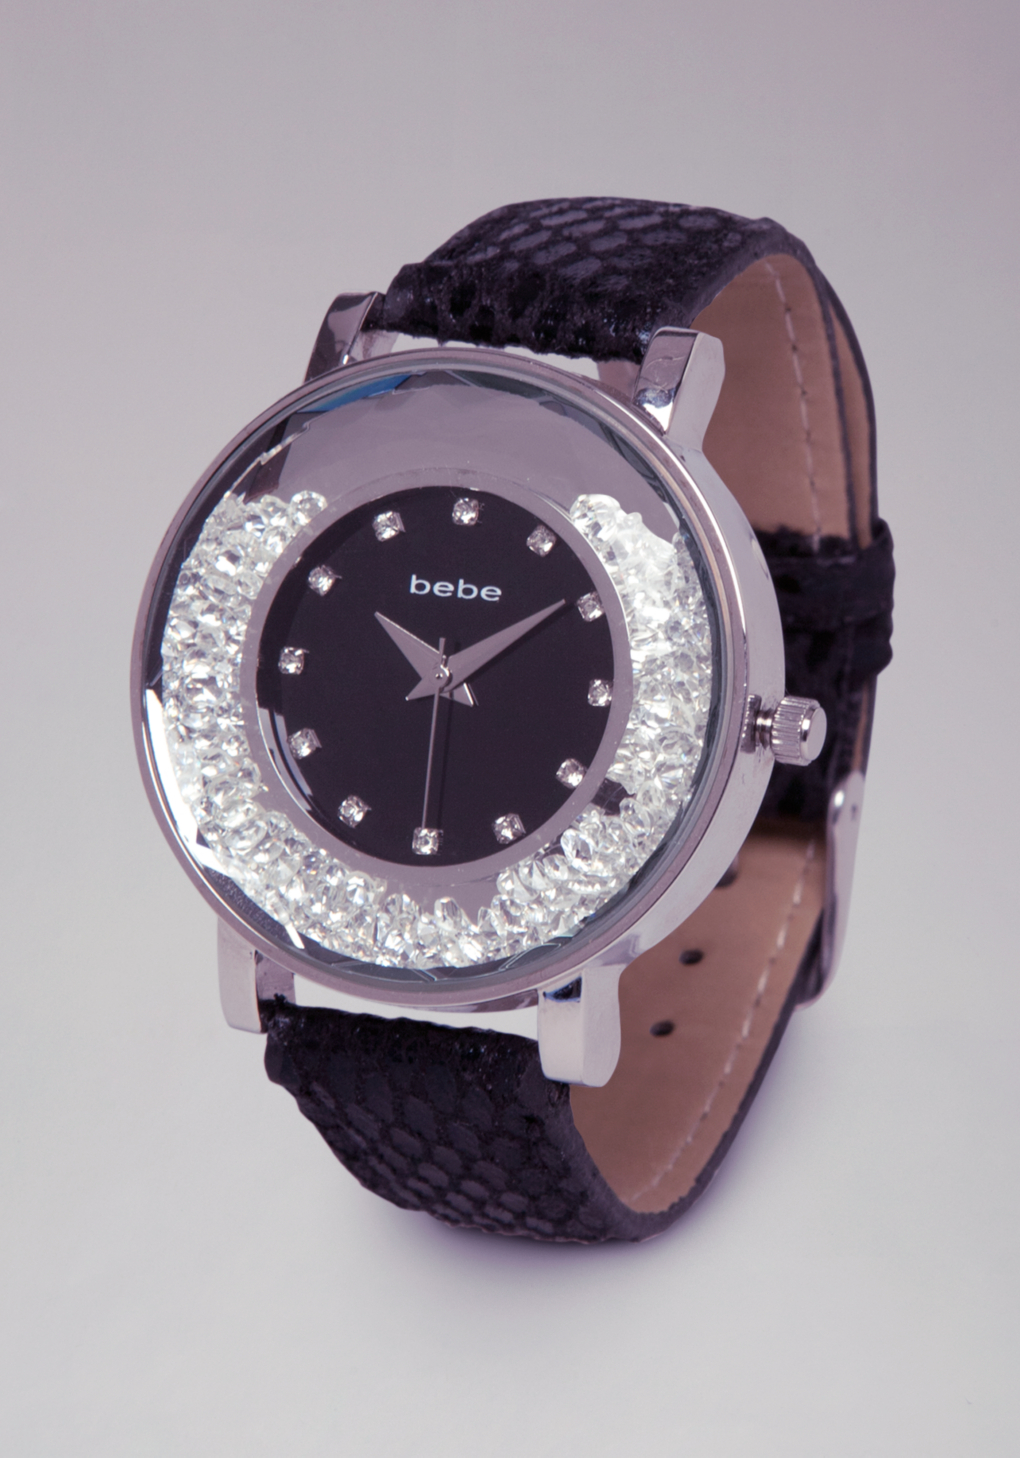 Lyst bebe floating crystal watch in black for Crystal watches